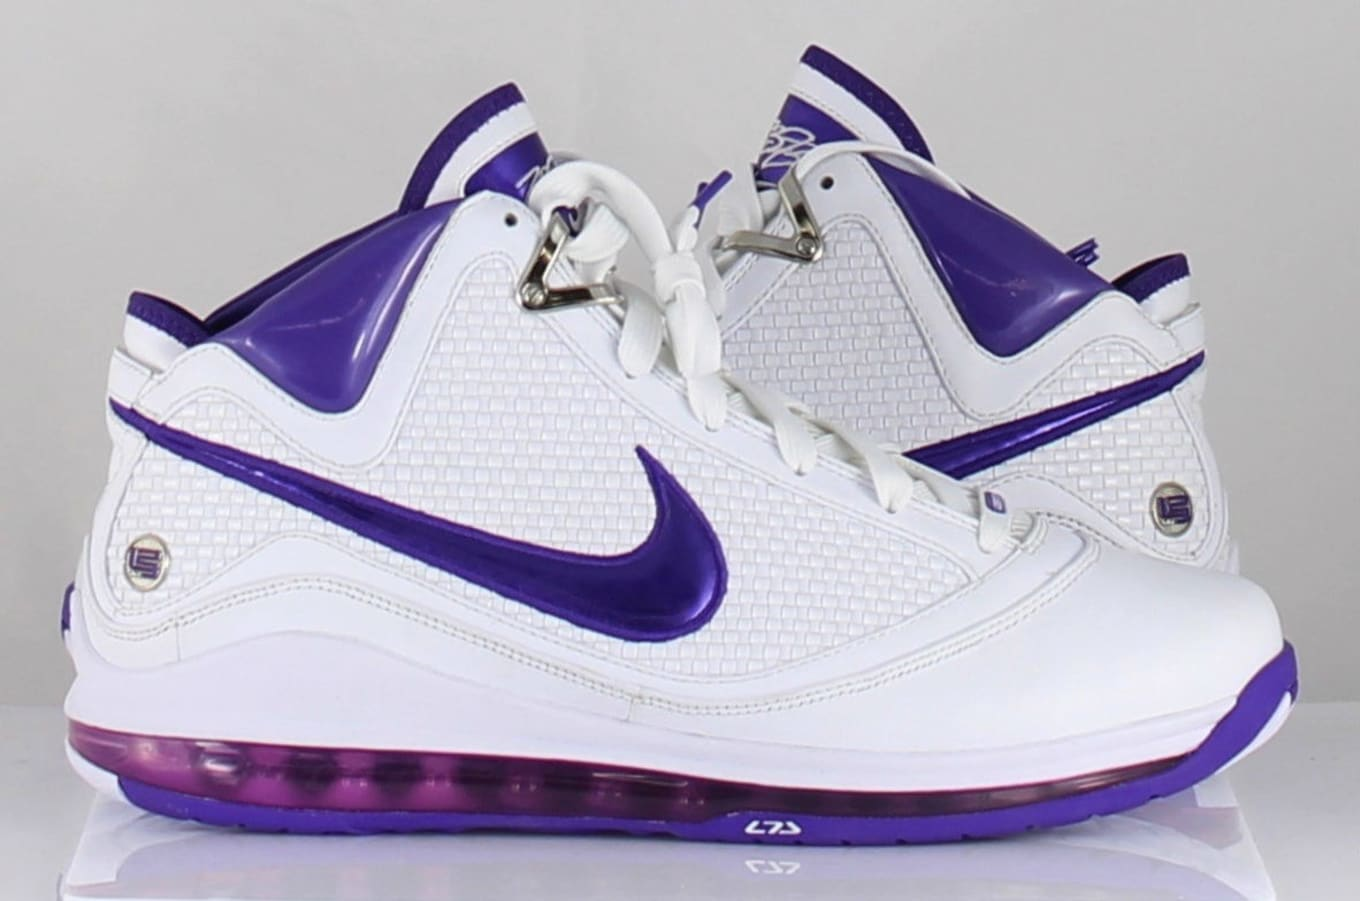 be09b95adba Nike LeBron Samples That Never Released | Sole Collector